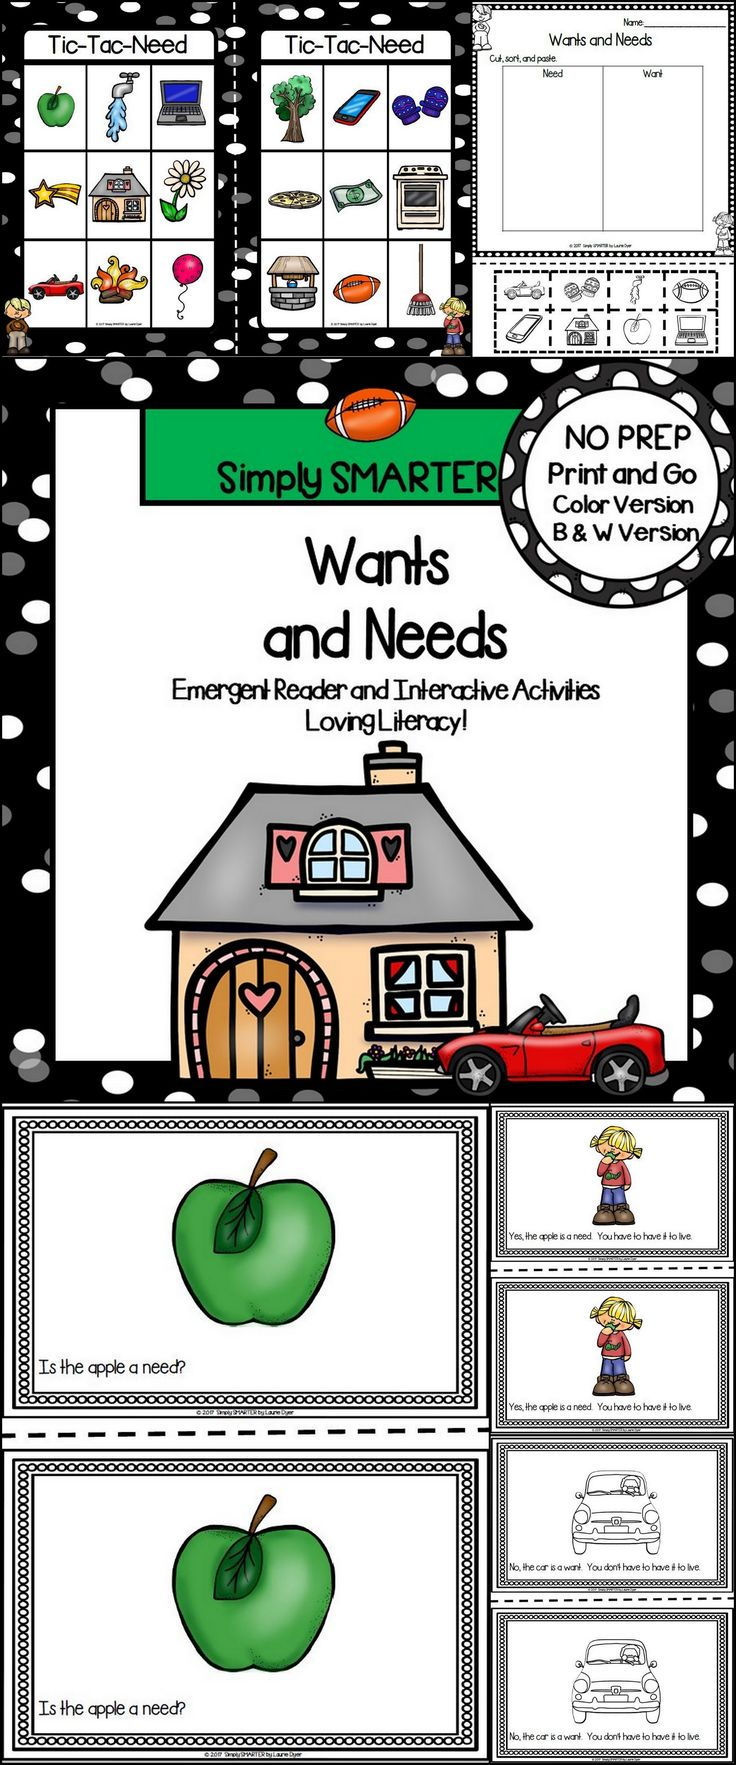 Are you looking for a NO PREP reading activity for preschool, kindergarten, or first grade? Then use these activities for guided reading, shared reading, independent reading, social studies, or homework. Children can choose a colored version or a black and white version of a 17 page reader. The reader contains a patterned sentence on each page and informs children about needs and wants. Children will reinforce what they read by completing the response page and by playing the board game.